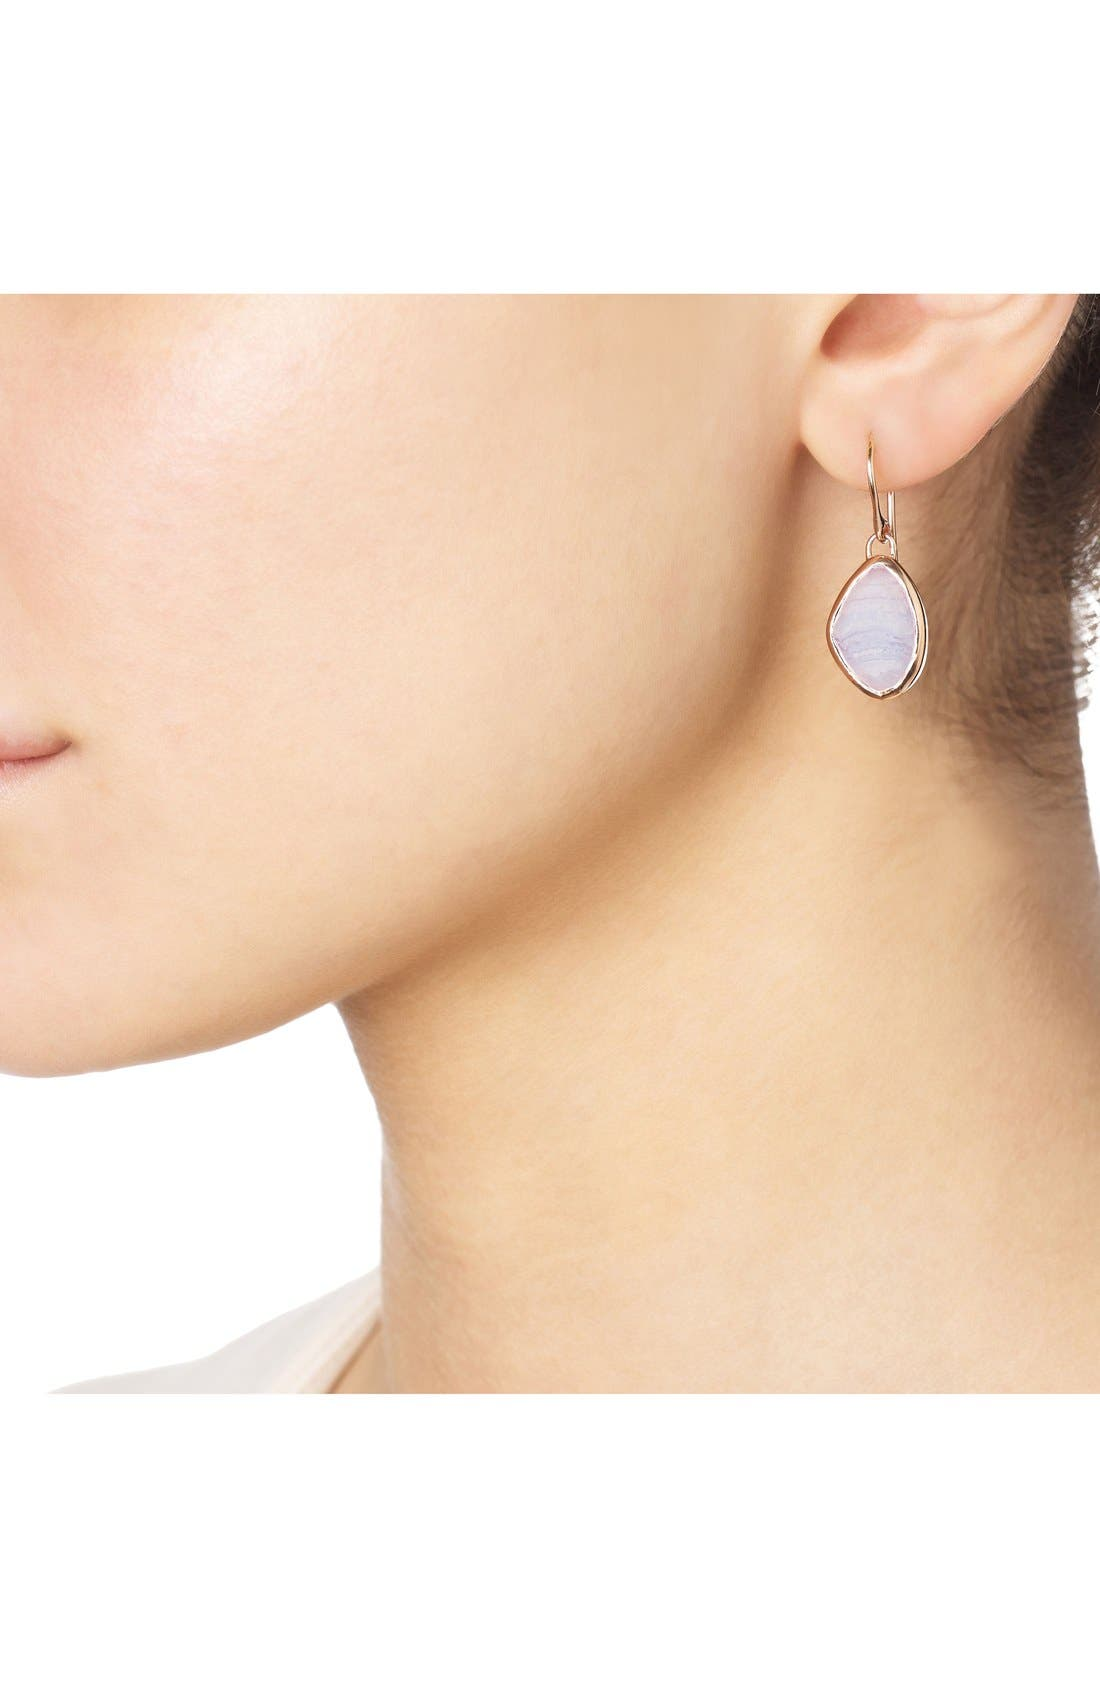 'Siren' Teardrop Earrings,                             Alternate thumbnail 2, color,                             Blue Lace Agate/ Rose Gold